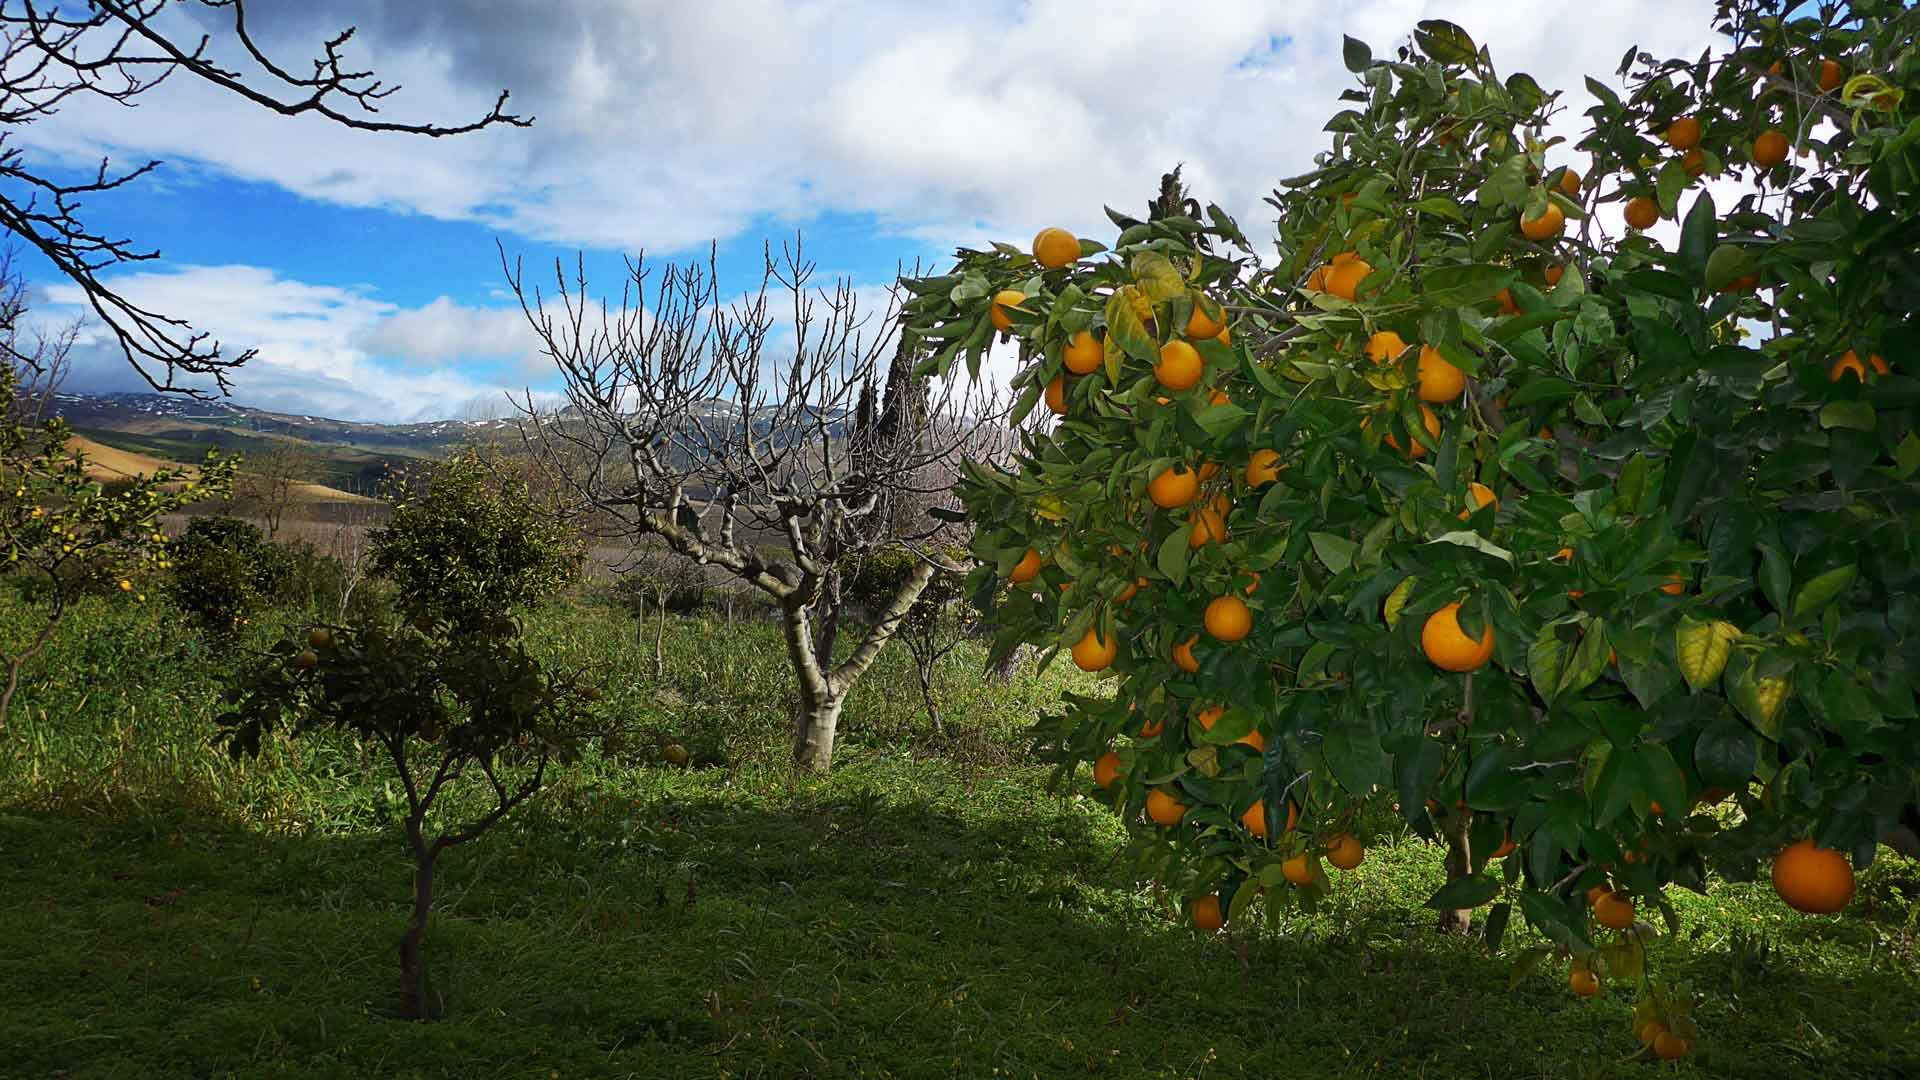 Orange trees in the vineyard of Tenuta Regaleali